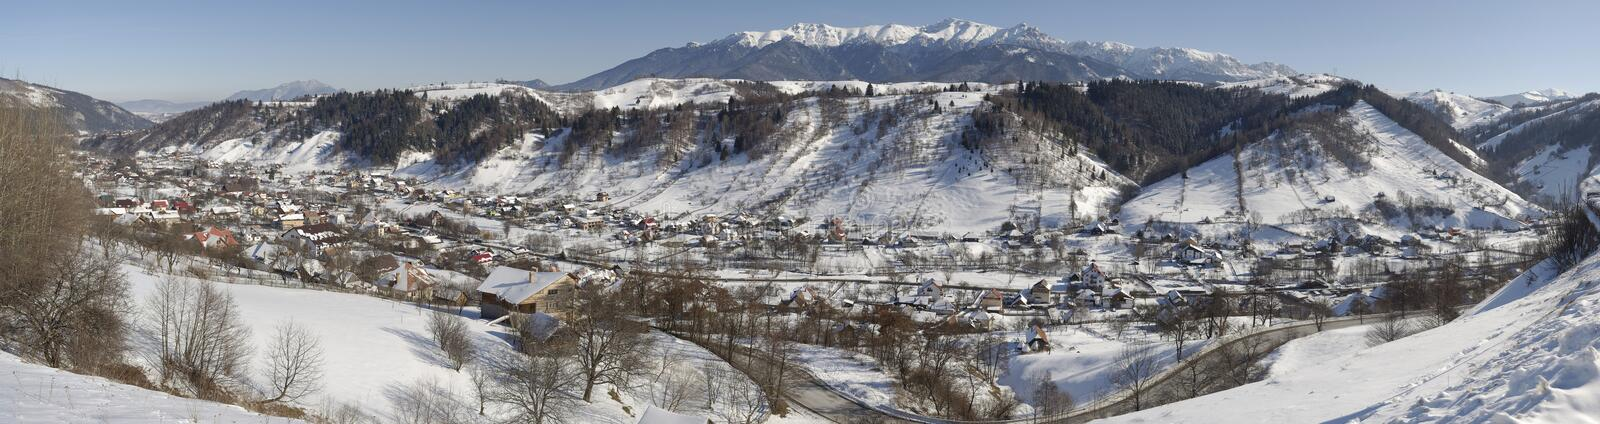 Download Moeciu town stock photo. Image of mountains, winter, forest - 12913104